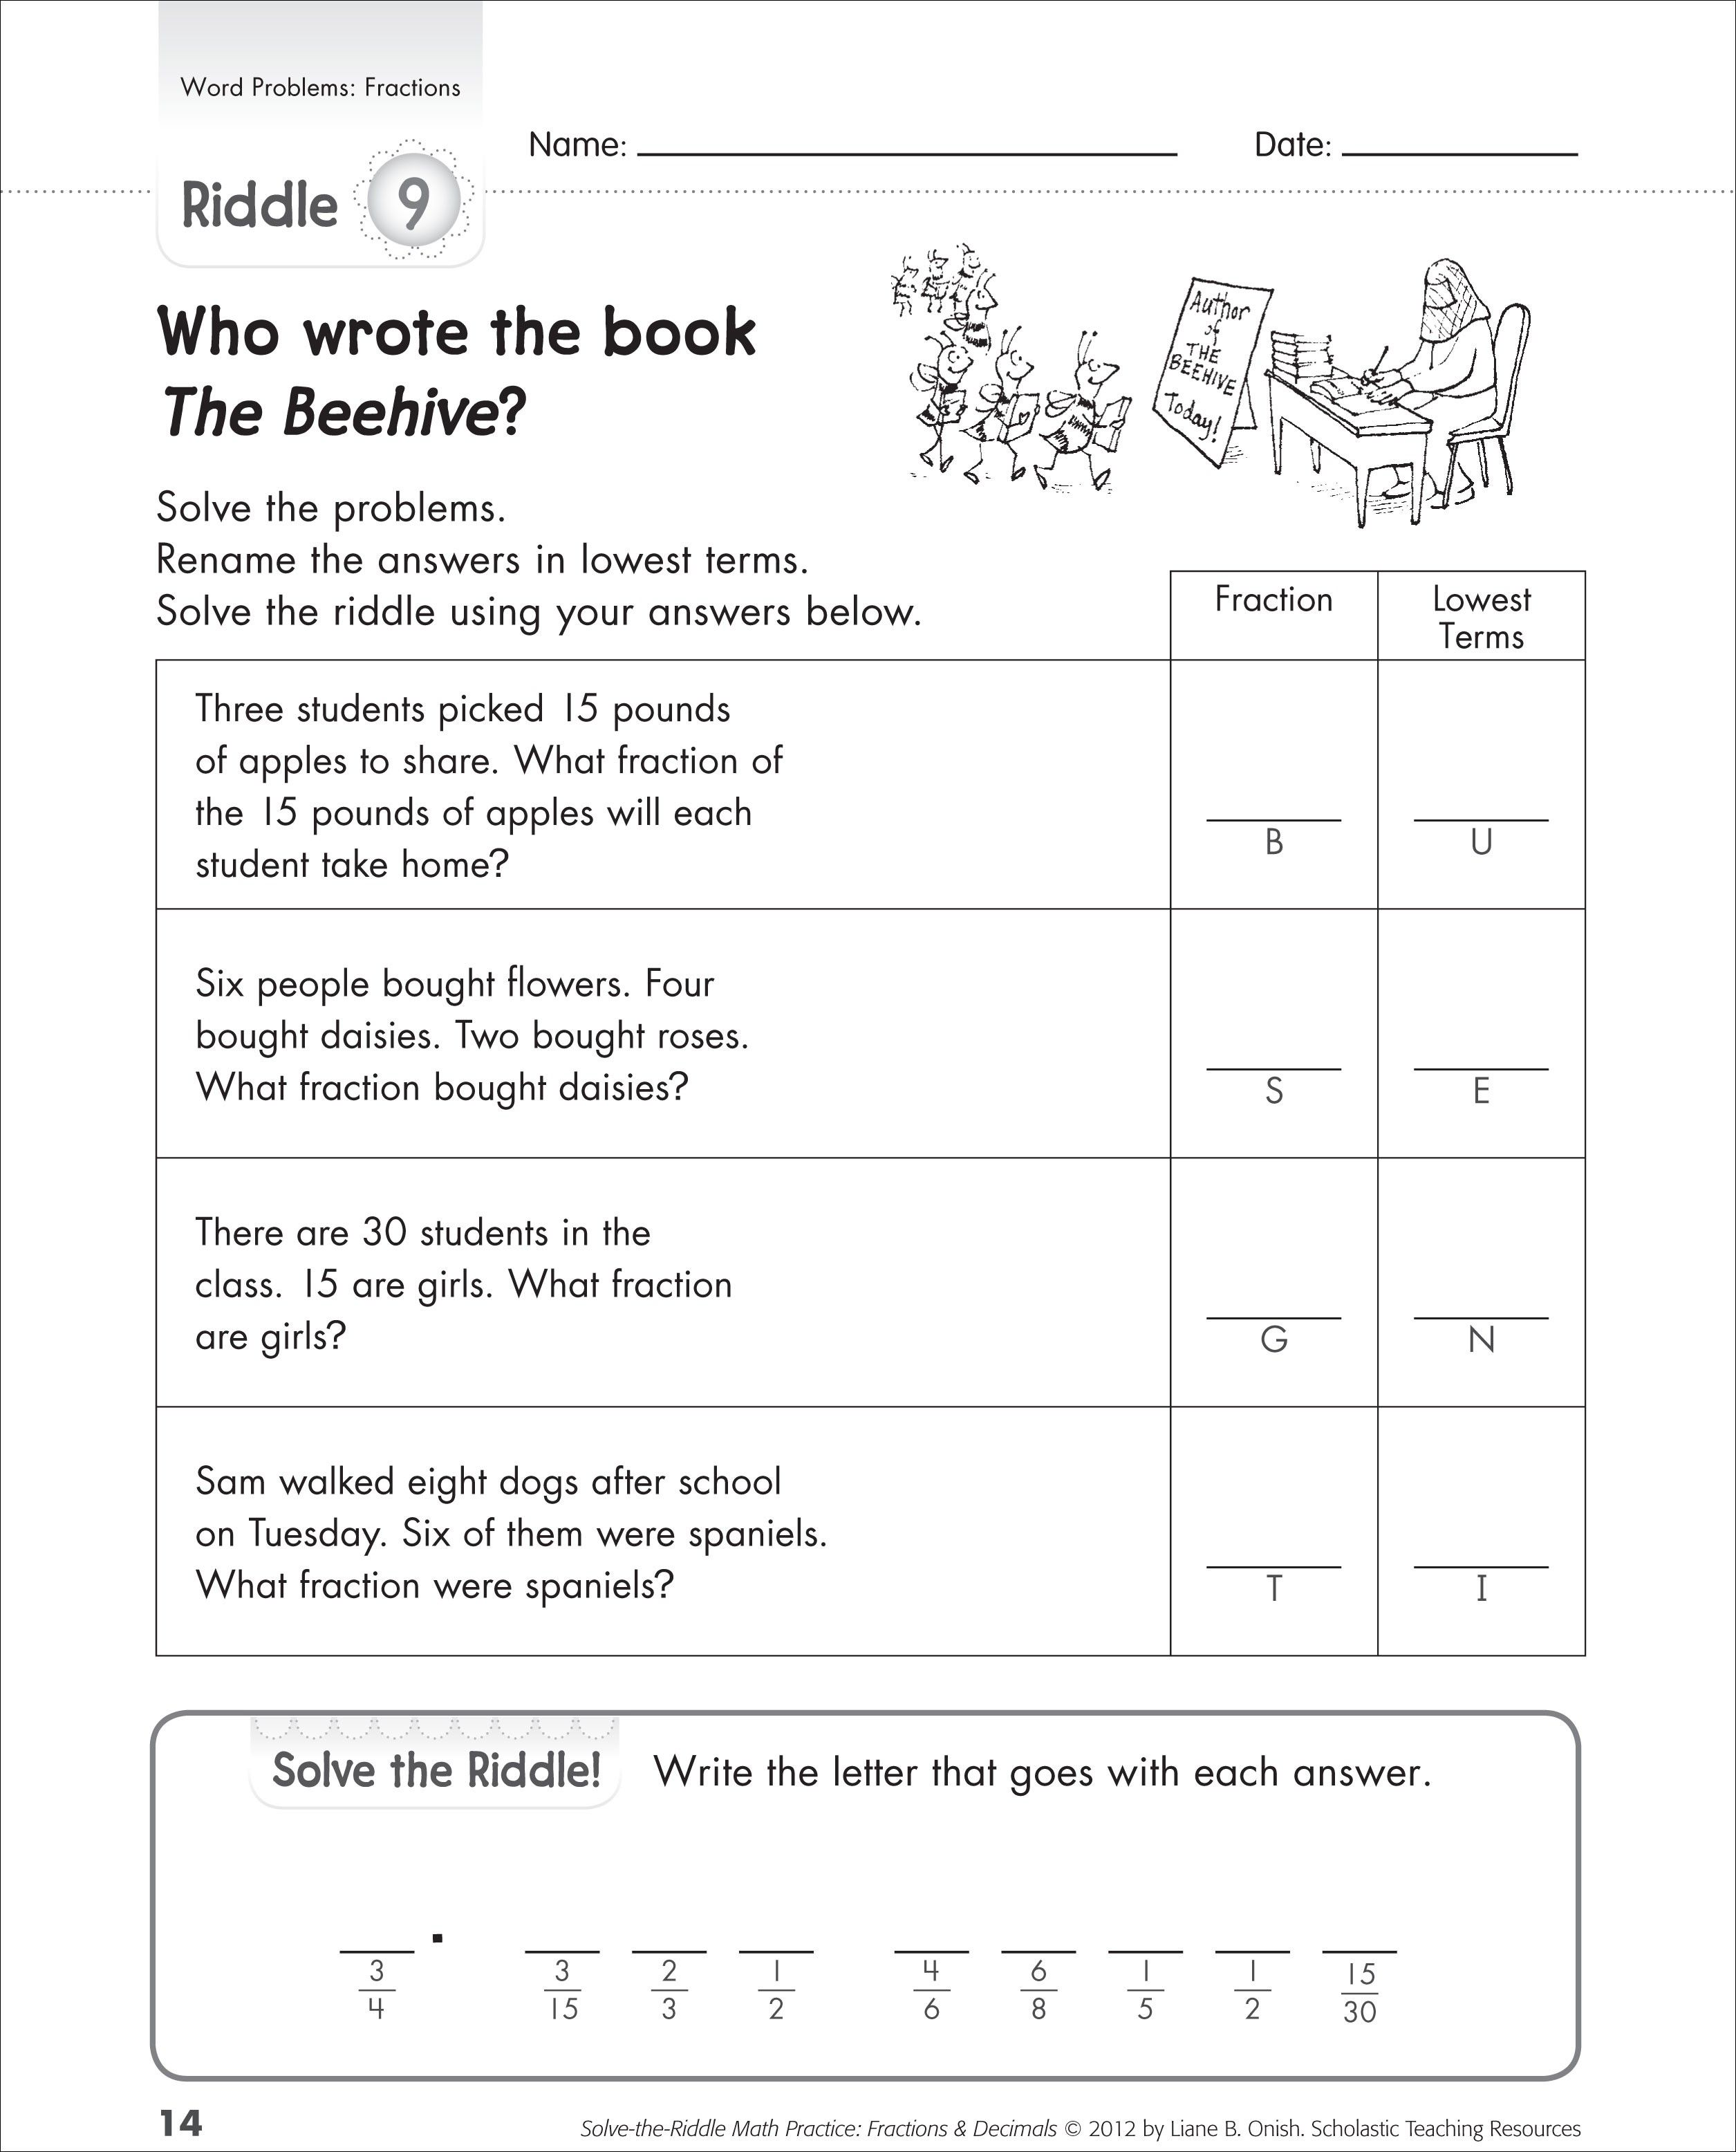 Fractions word problems worksheets 5th grade